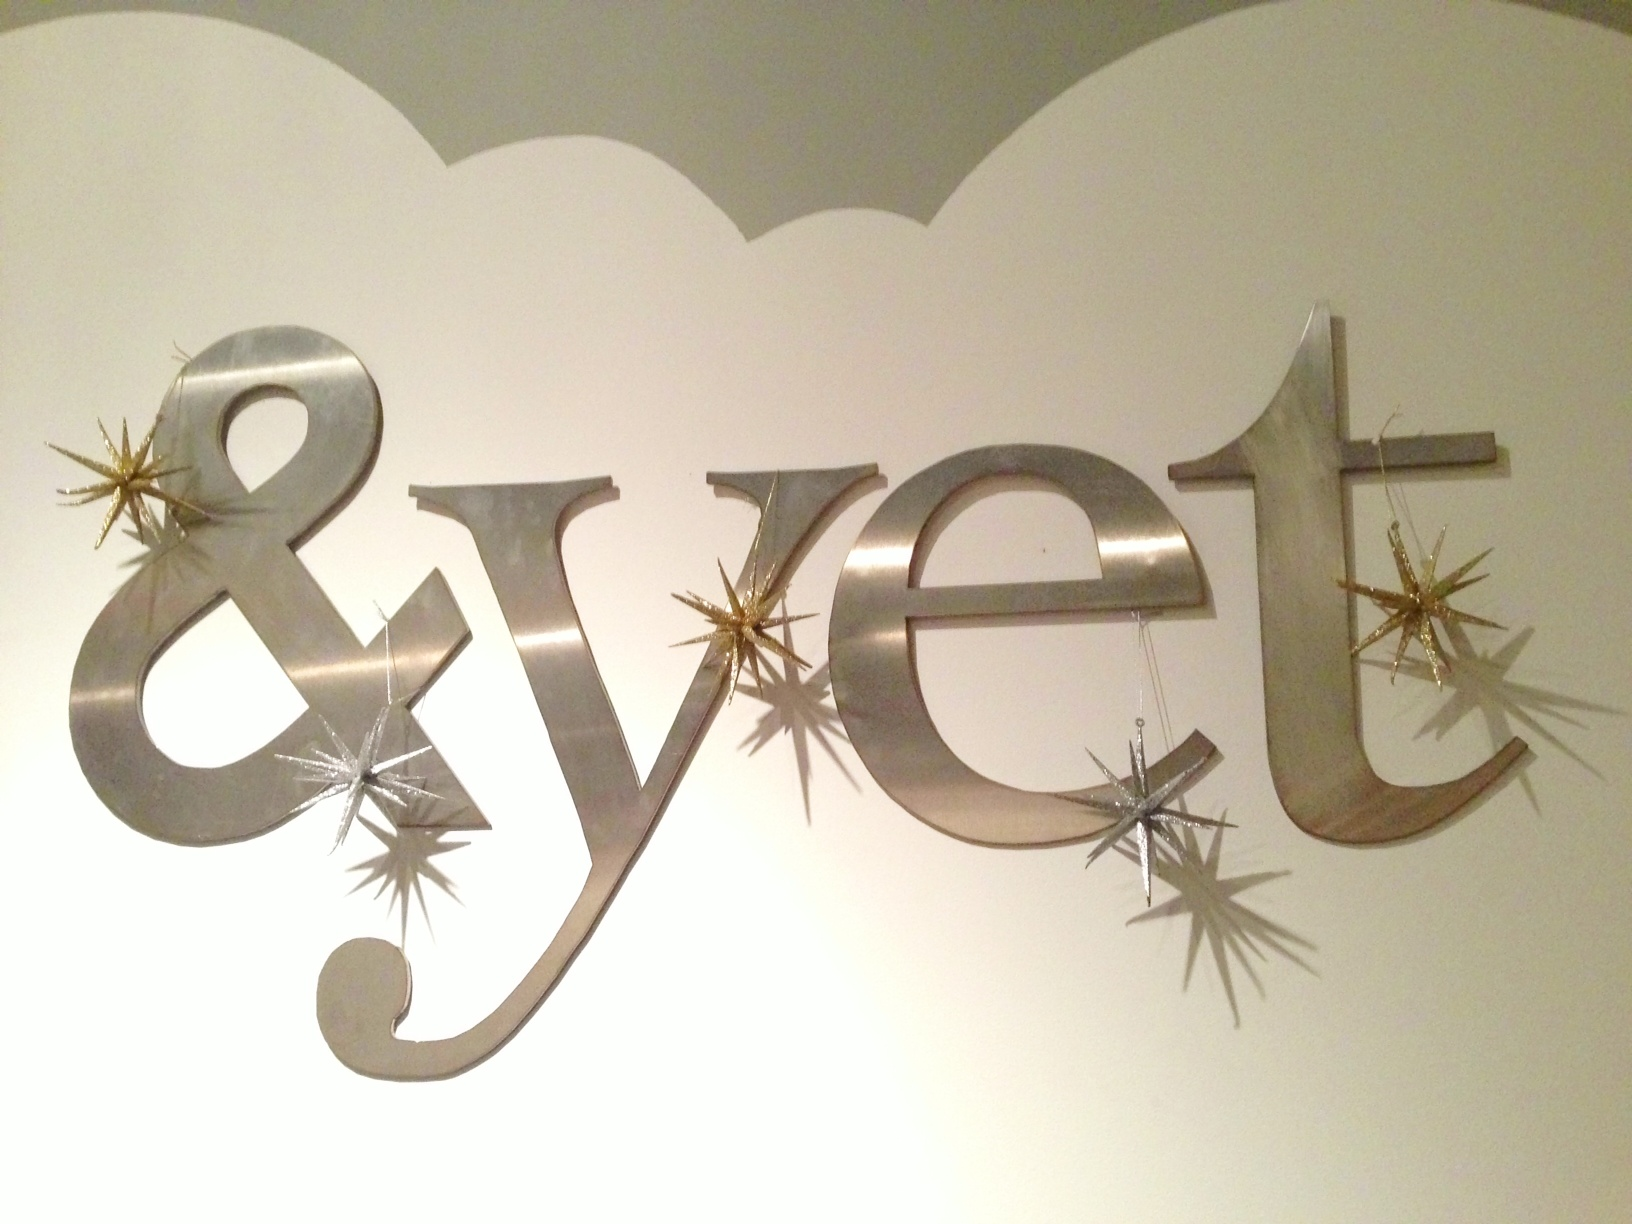 the &yet office logo decorated with ornaments